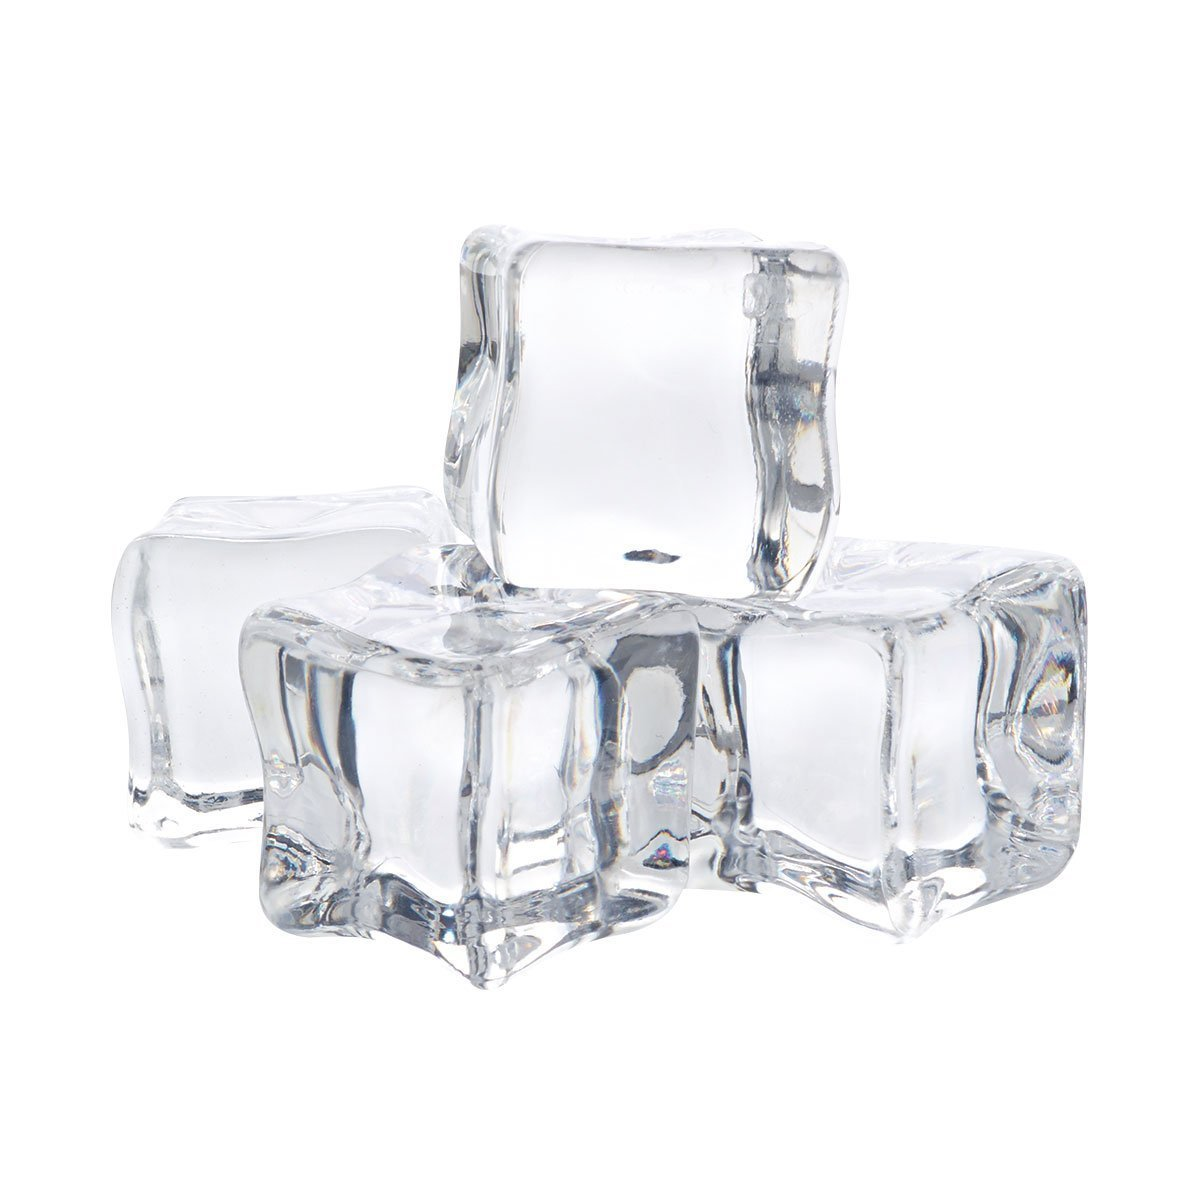 12Pcs/2CM Acrylic Clear Ice Rock Cubes for Vase Fillers and Table Decorating lansue